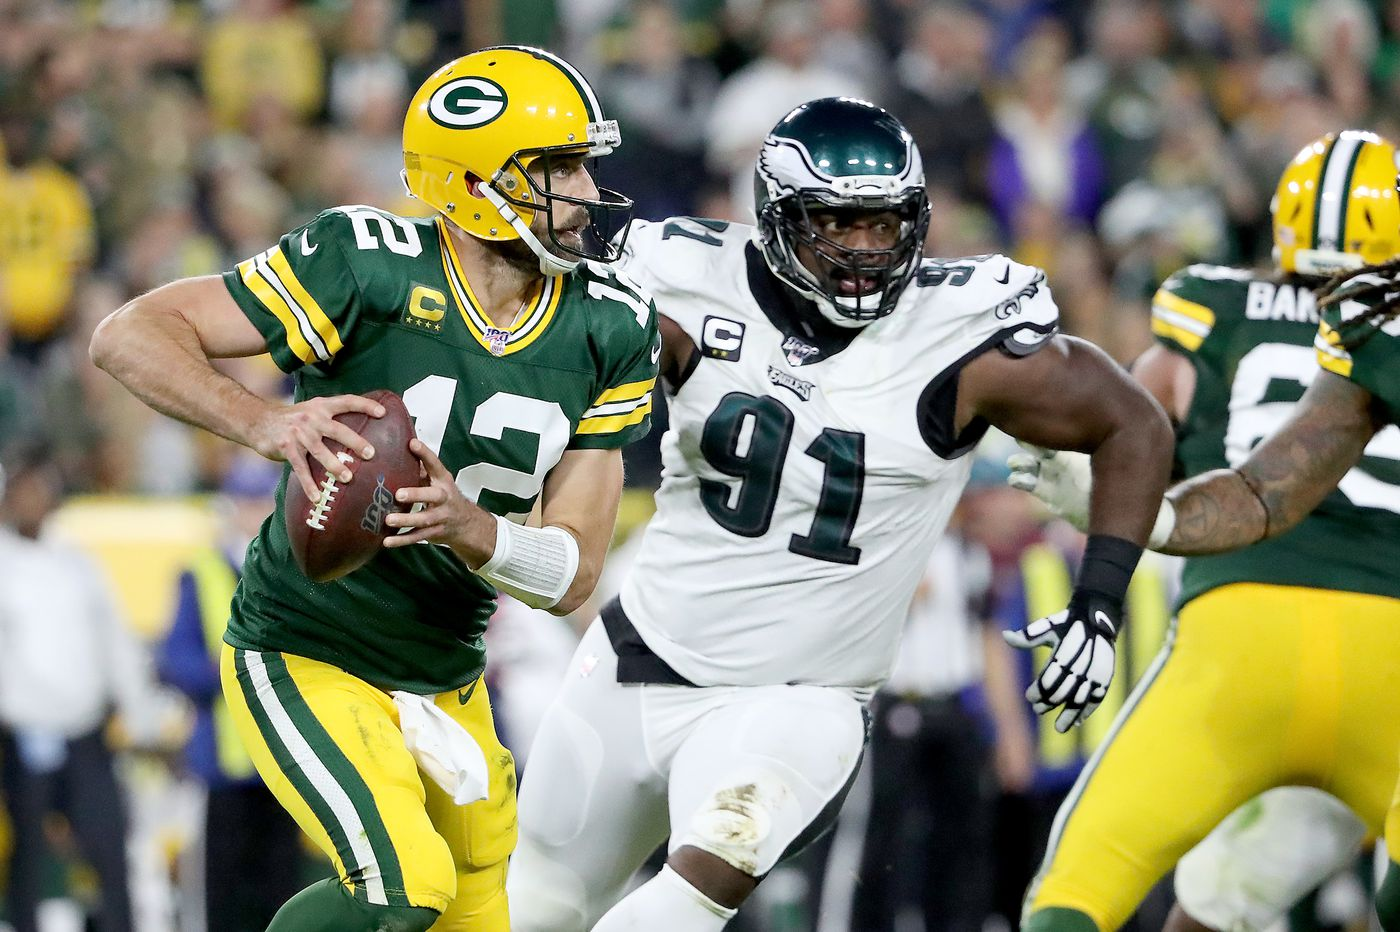 Eagles vs. Packers: Our beat writers' predictions for Week 13